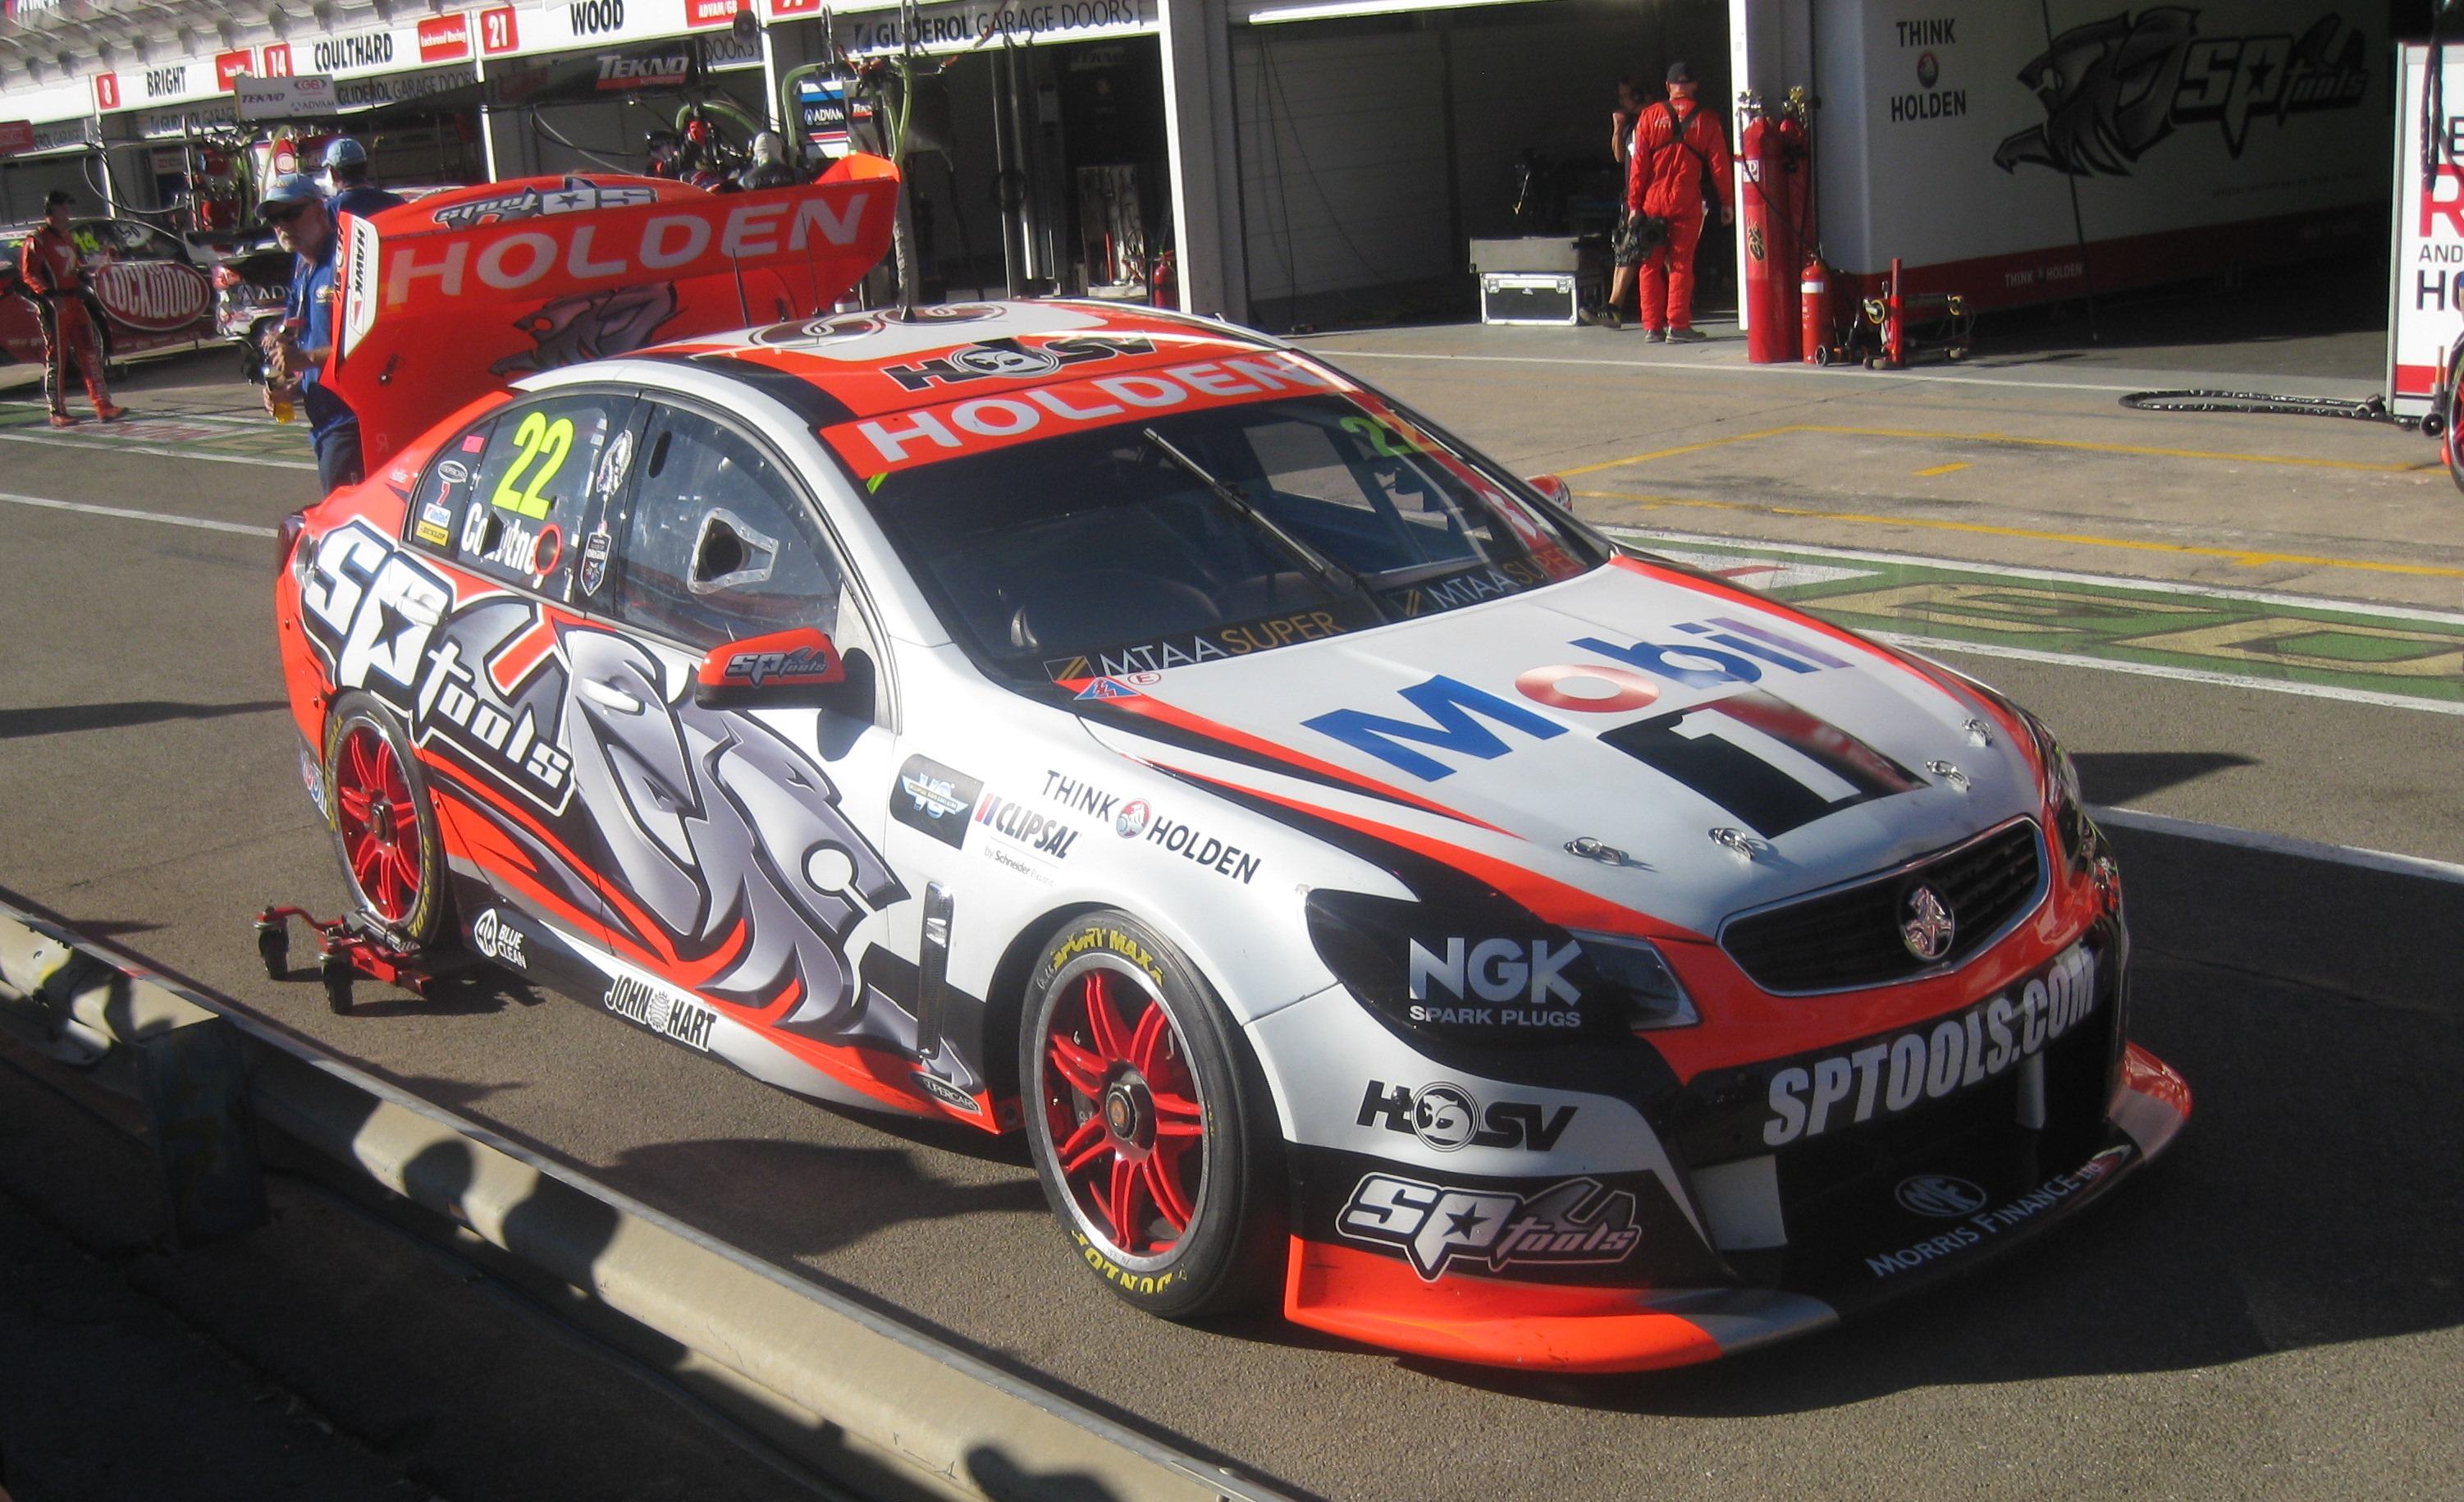 James Courtney 2014 of James Courtney 2014.jpg